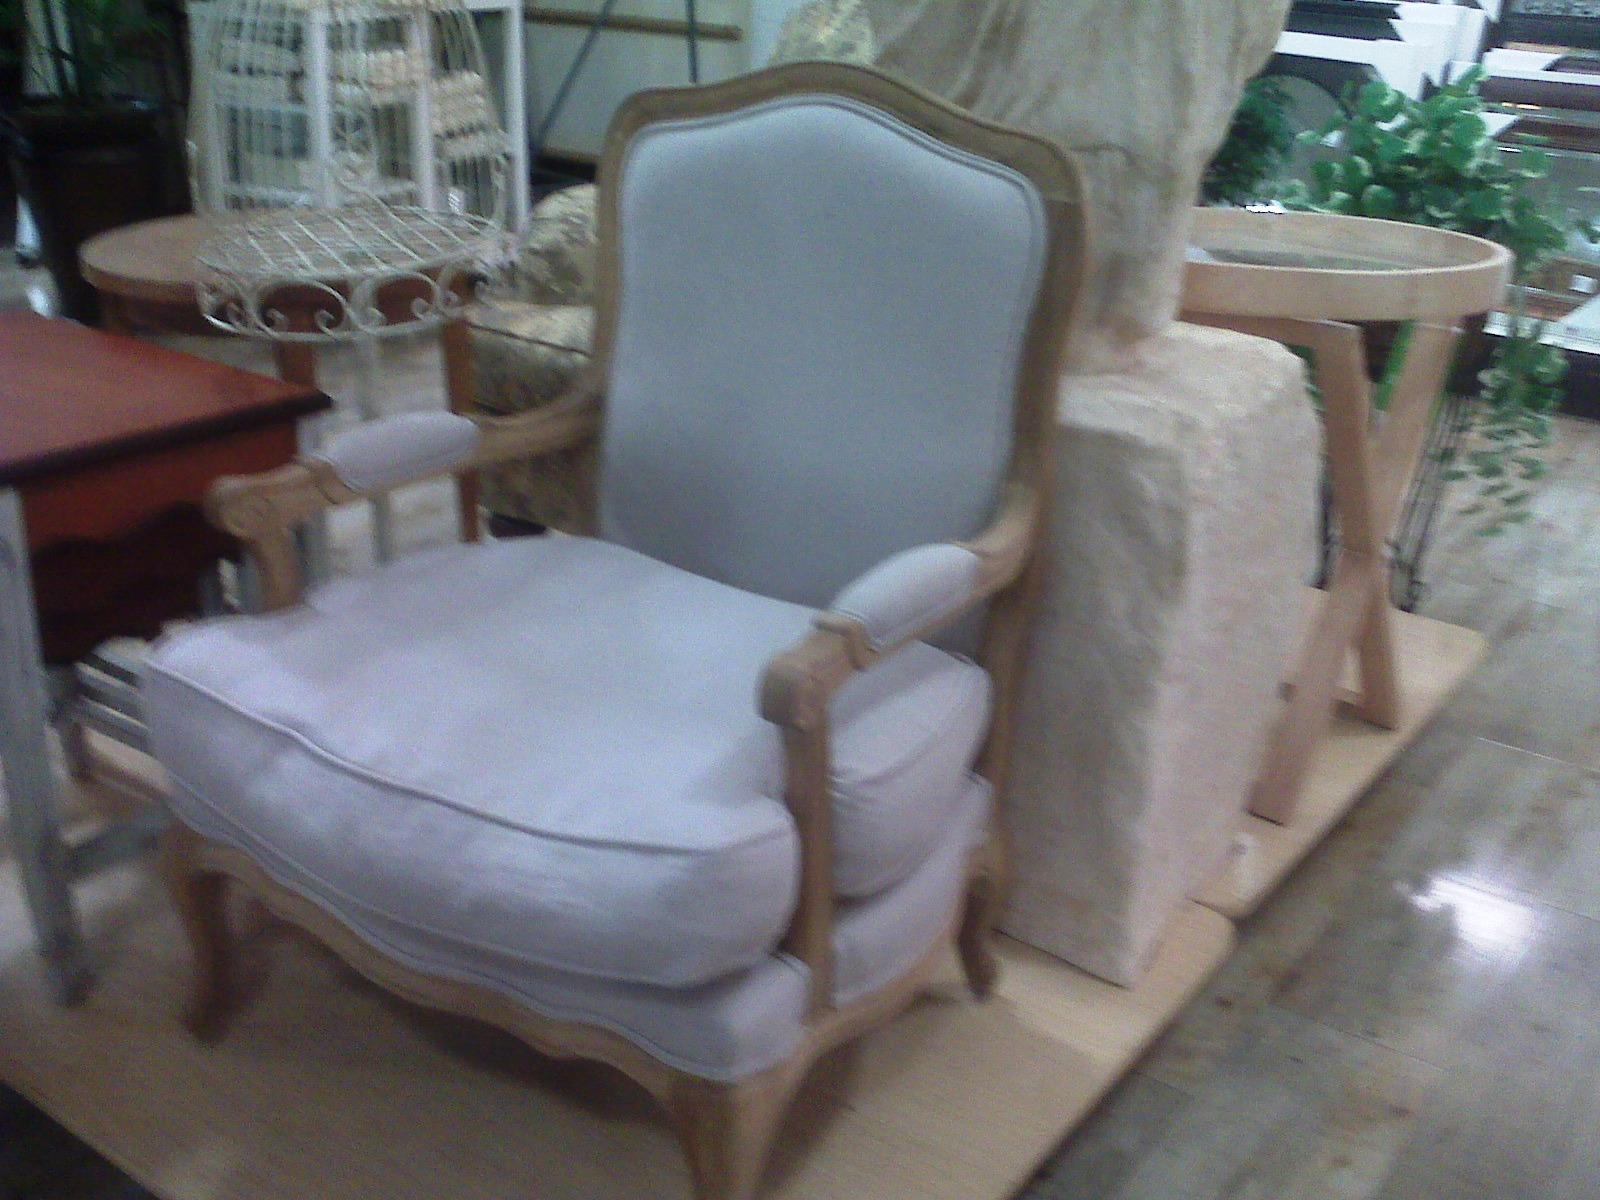 Just in dreamy bleached wood furniture at home goods store for Home decor 75063